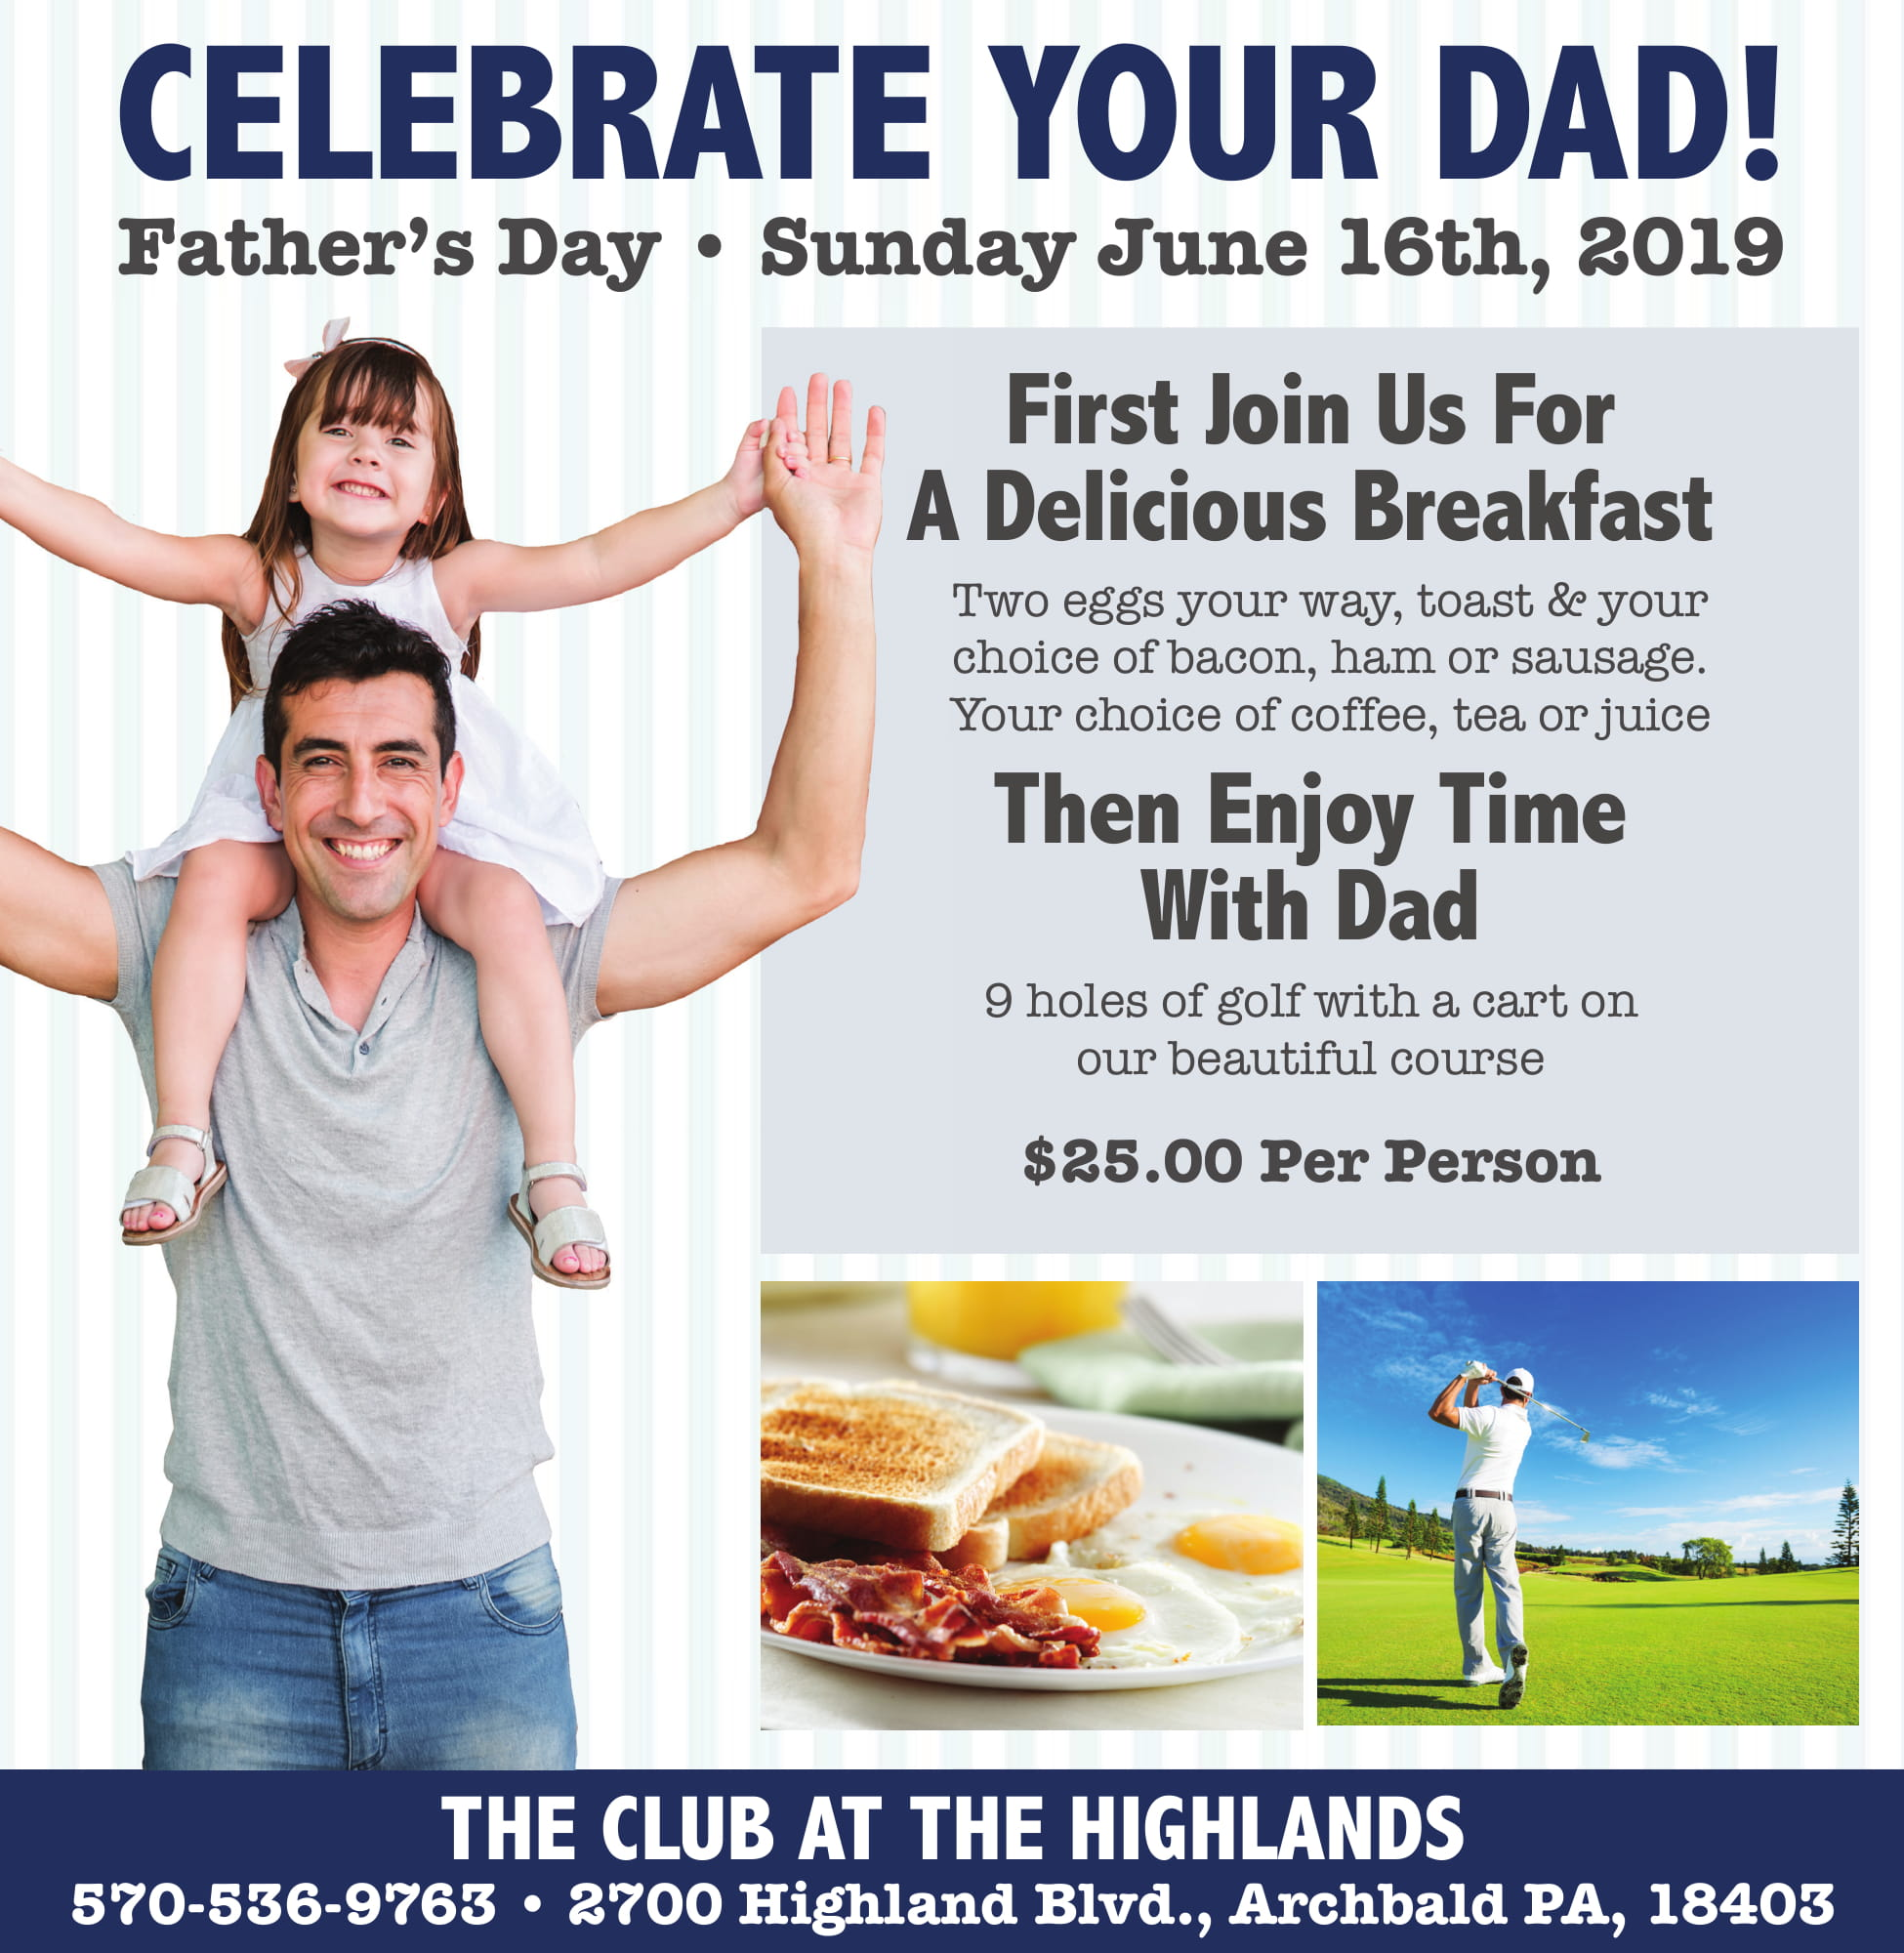 Highlander_Fathers Day_2019-1